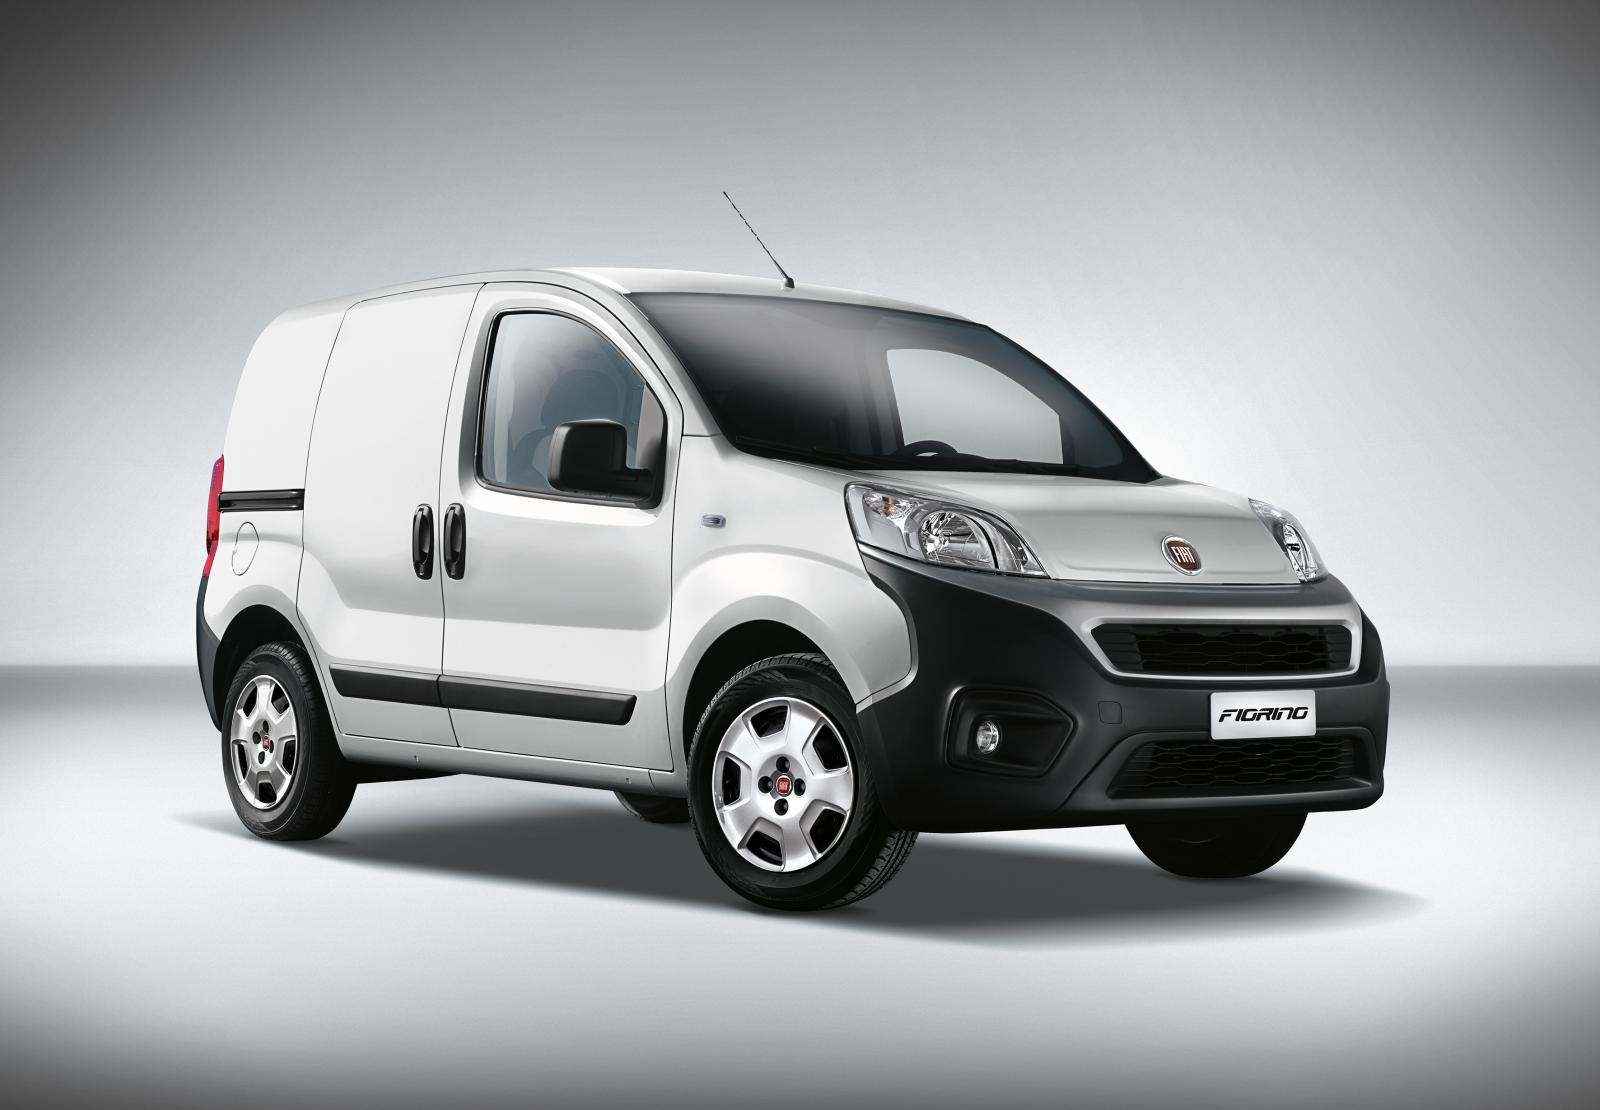 fiat fiorino restyl un utilitaire avec des blocs euro 6. Black Bedroom Furniture Sets. Home Design Ideas